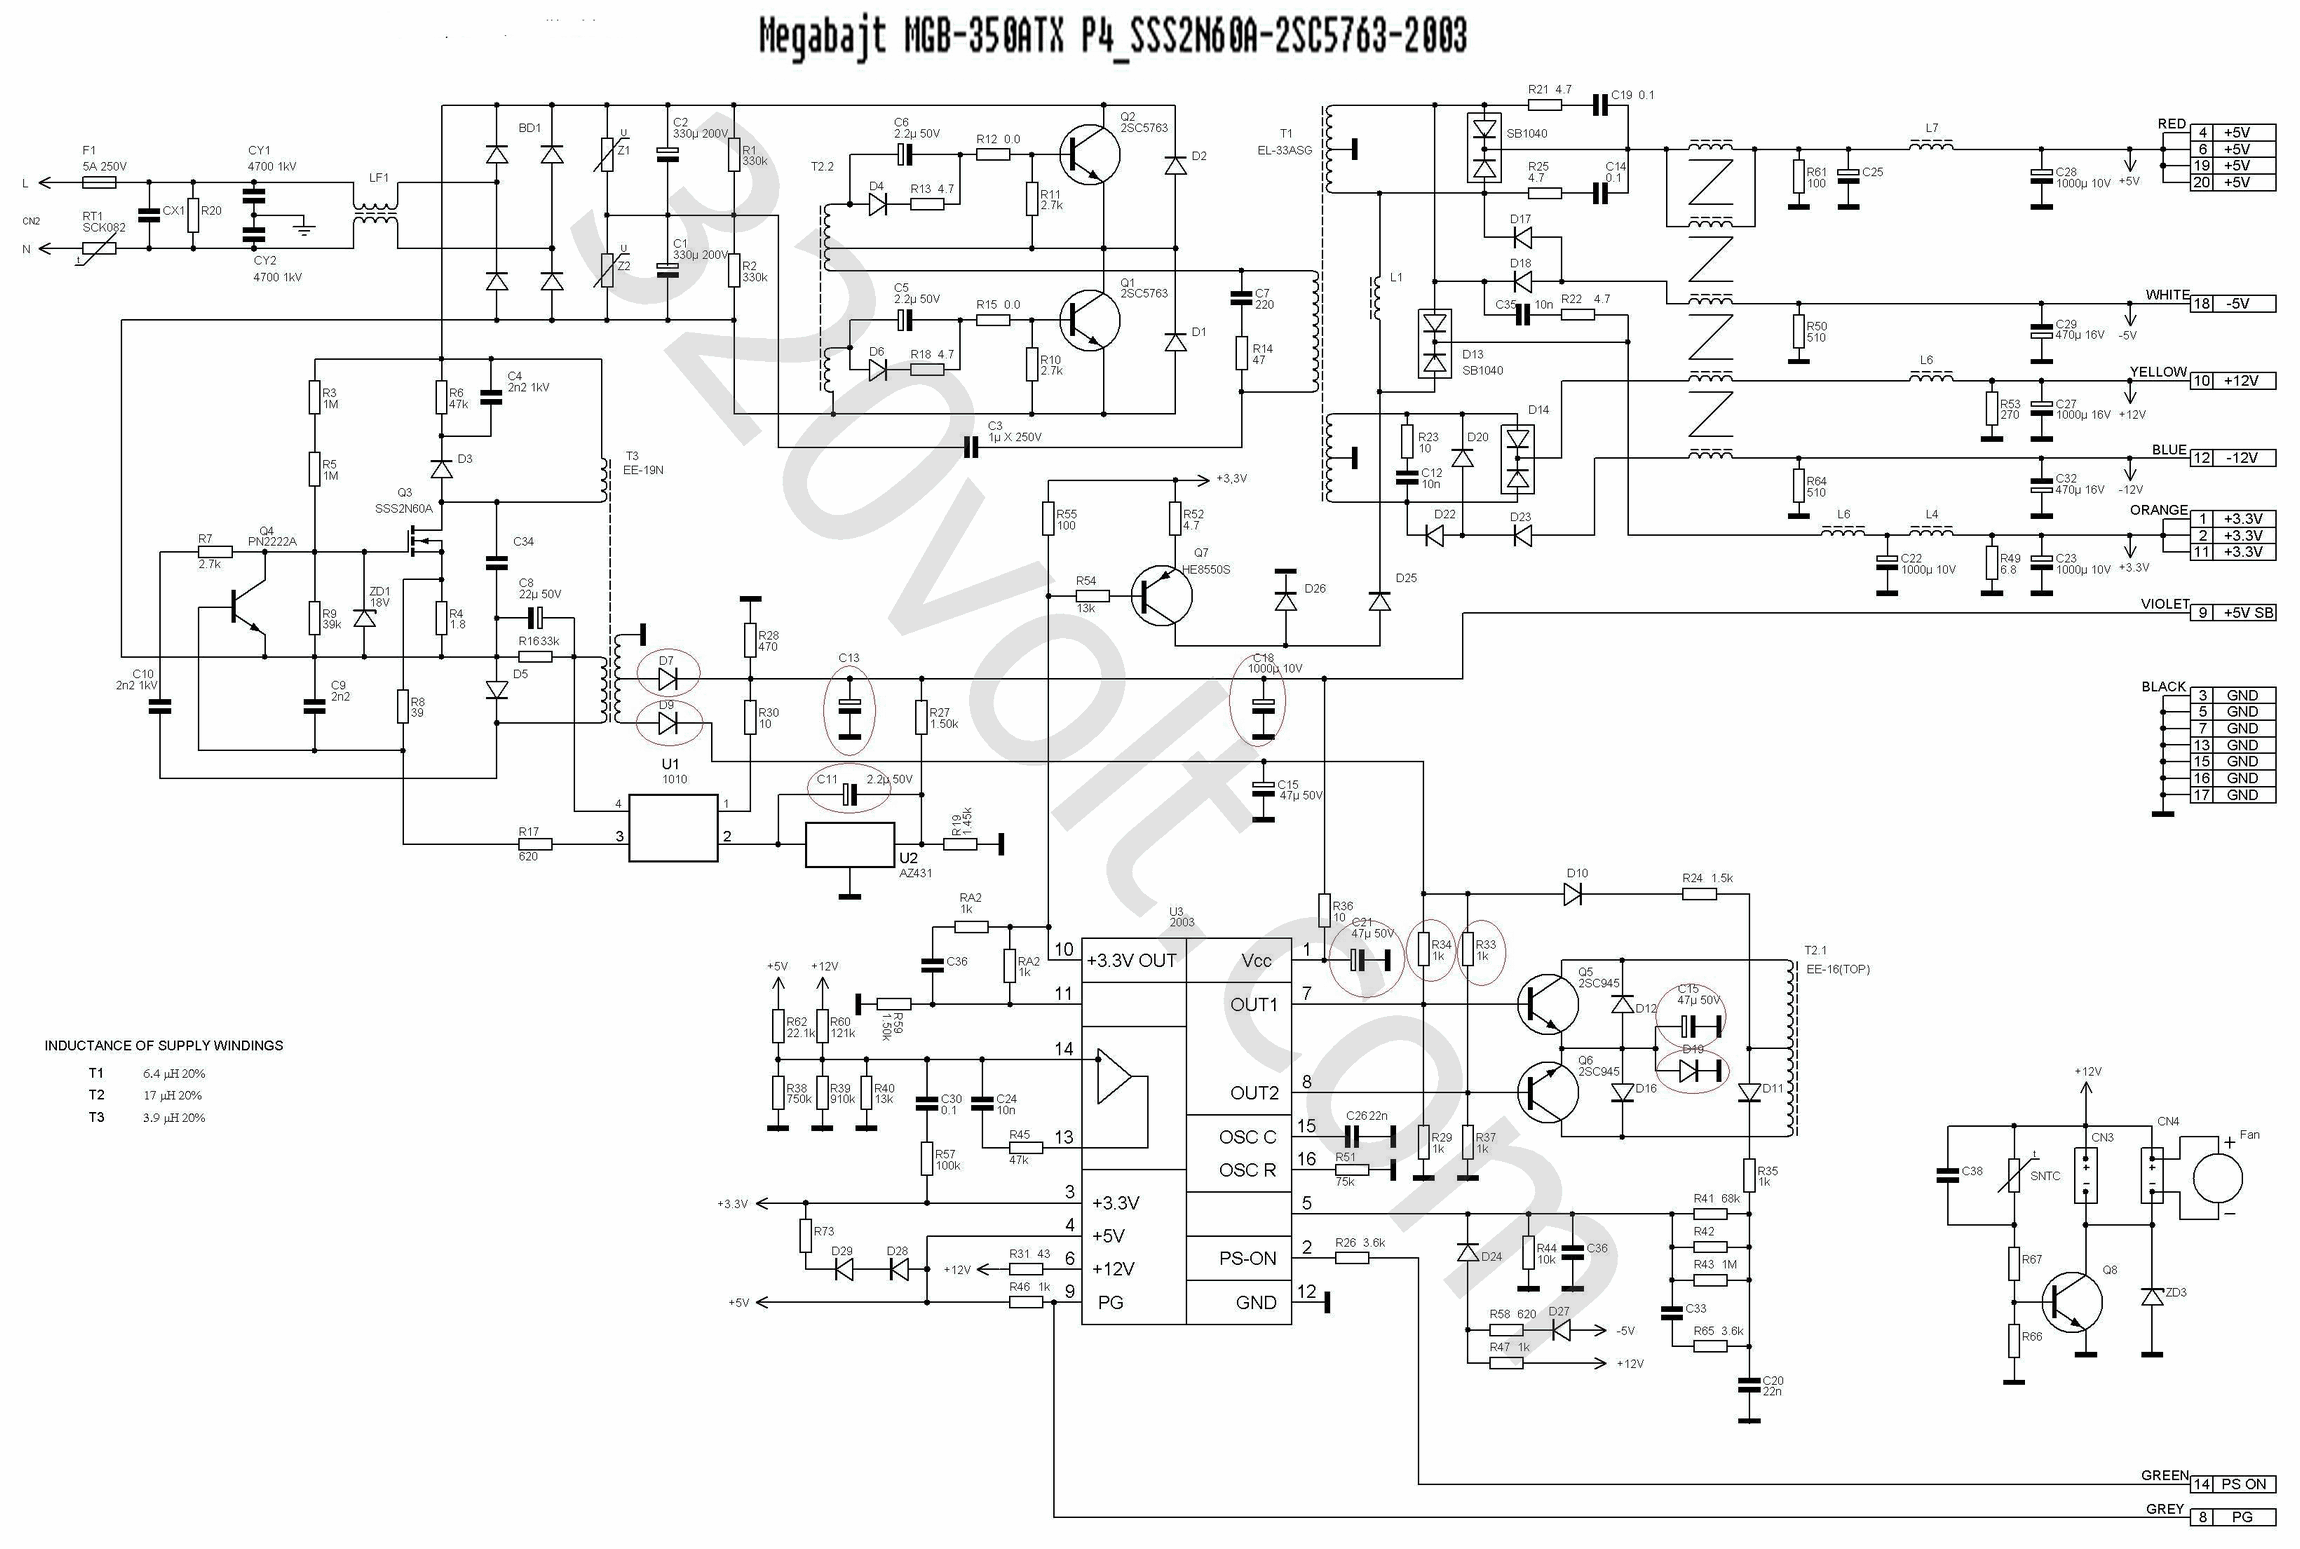 atx motherboard schematic diagram